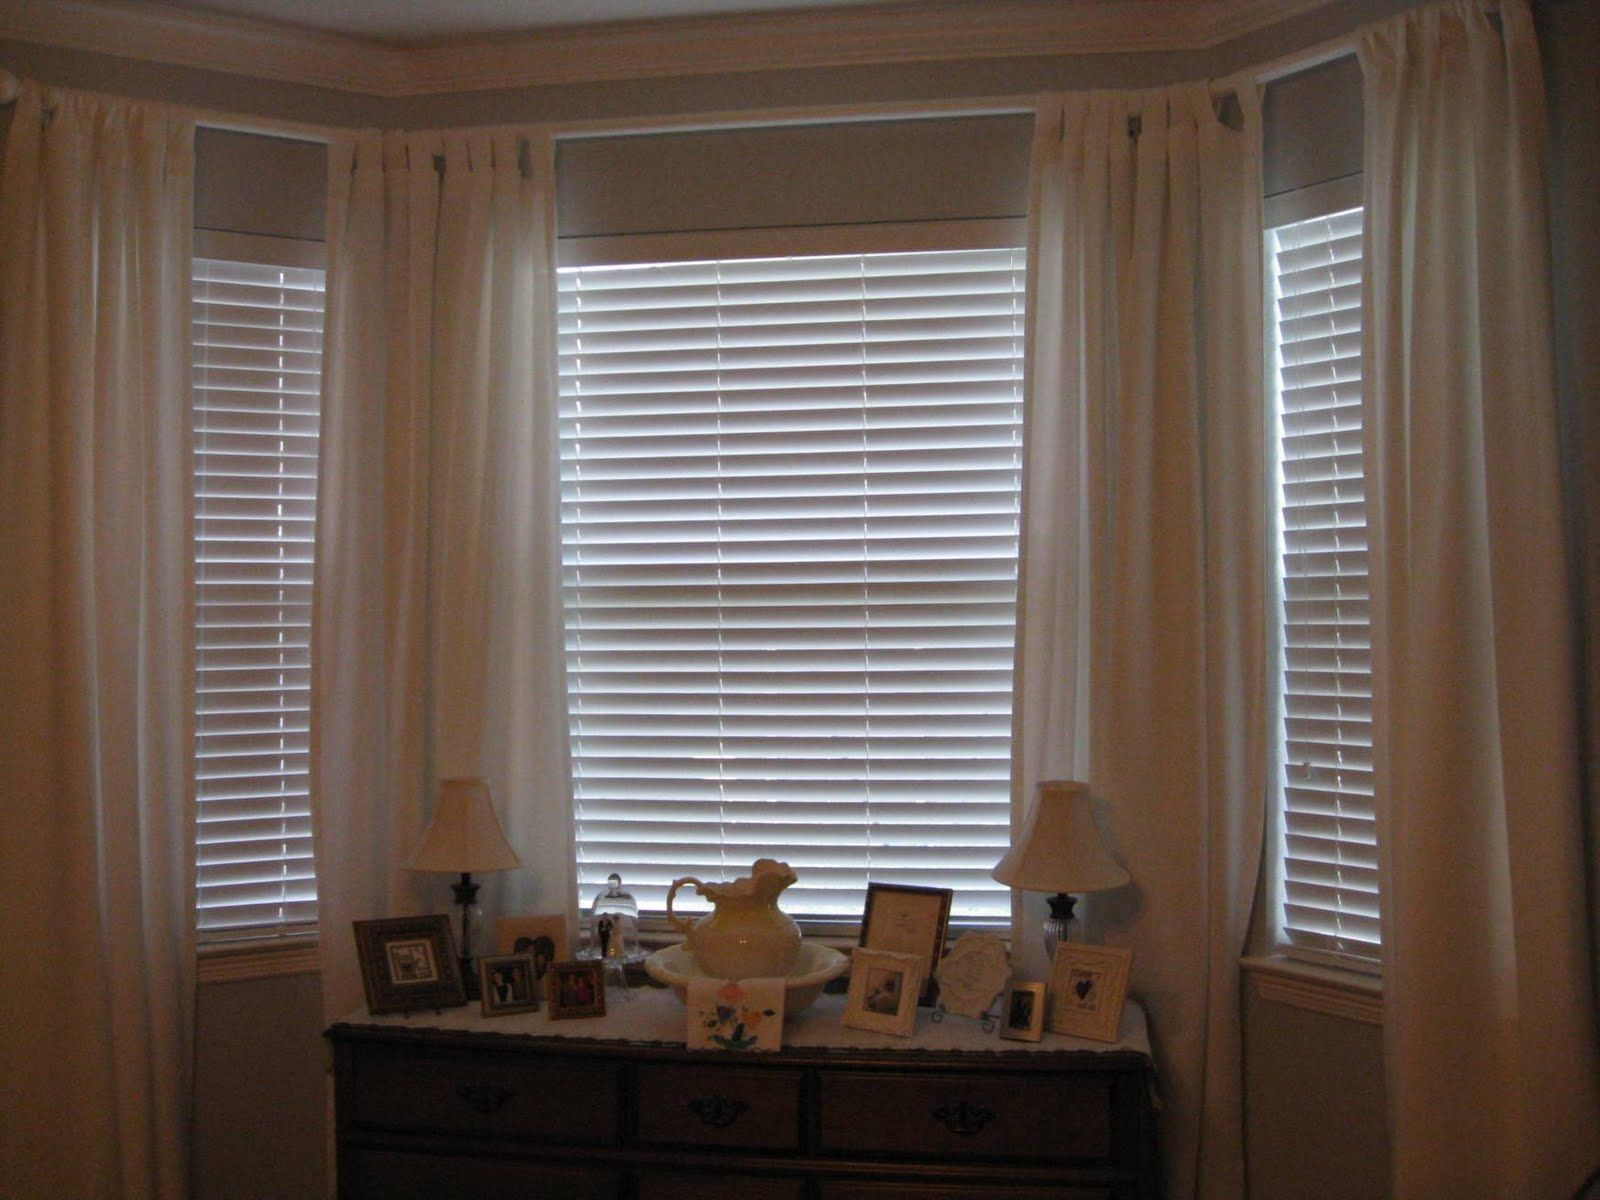 Living Room Bay Window Curtain Ideas Are Difficult To Be Found But Your Need It Because Can Assist You Make One Immaculate Home